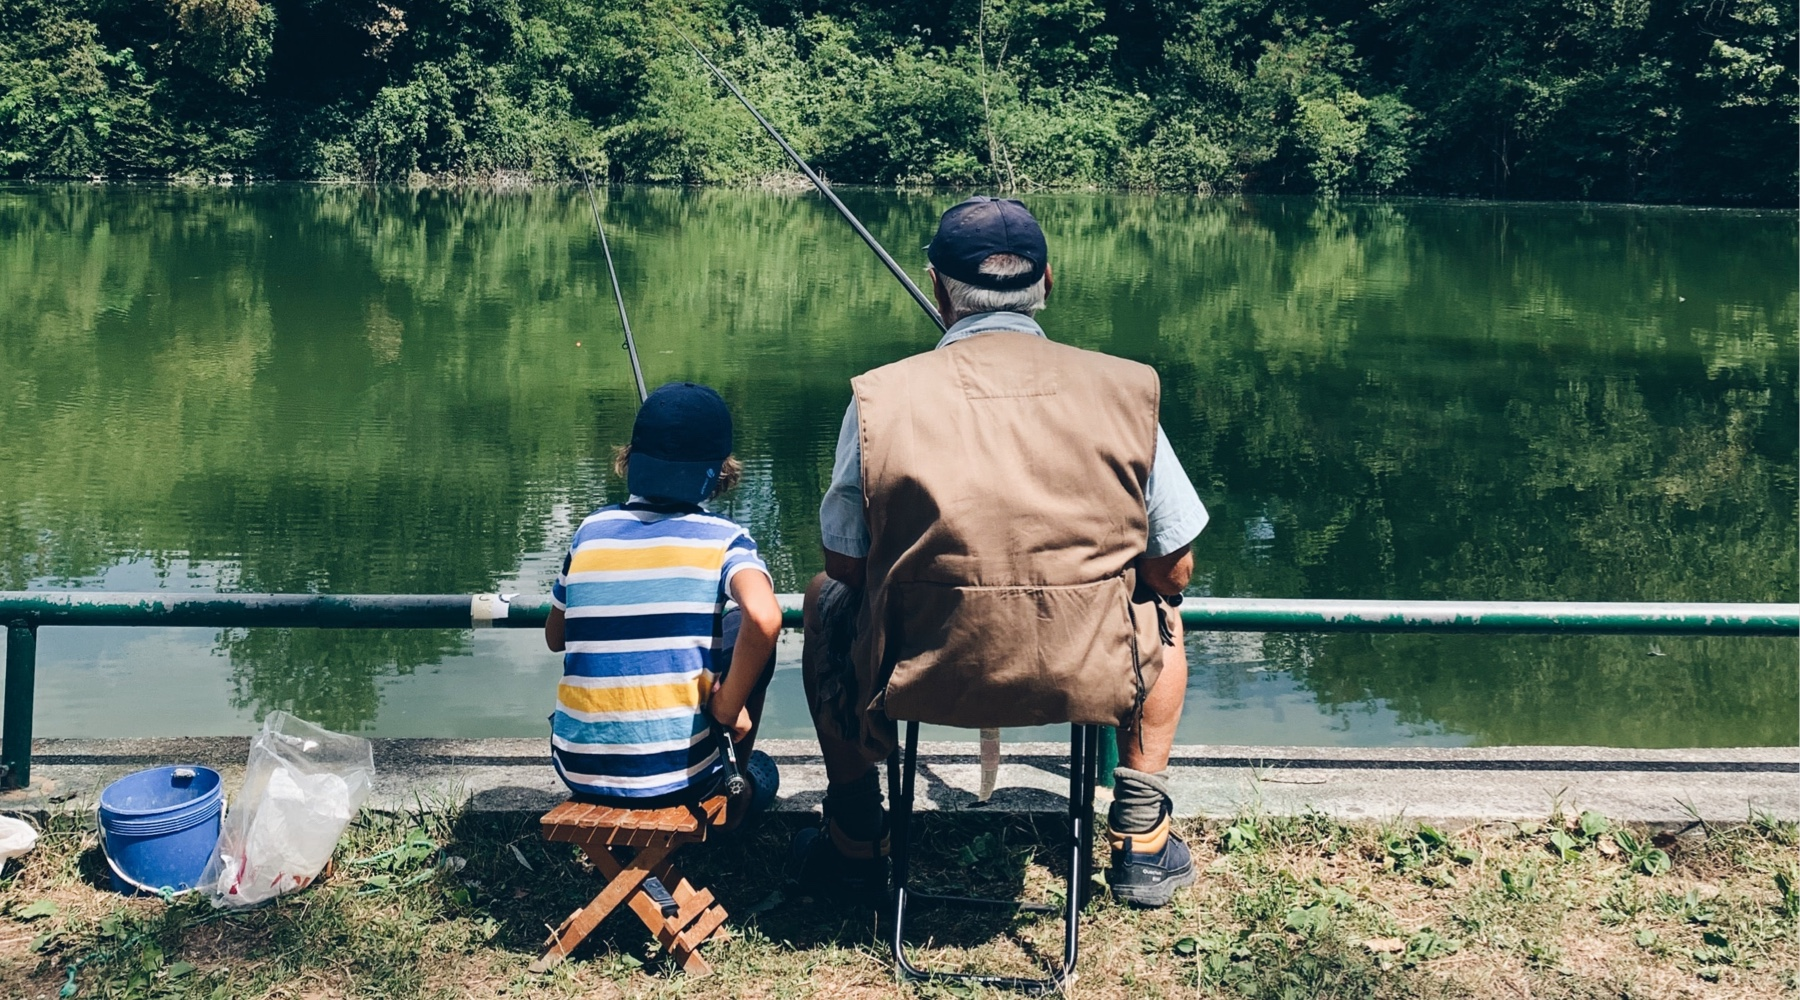 Father and son fishing in chairs